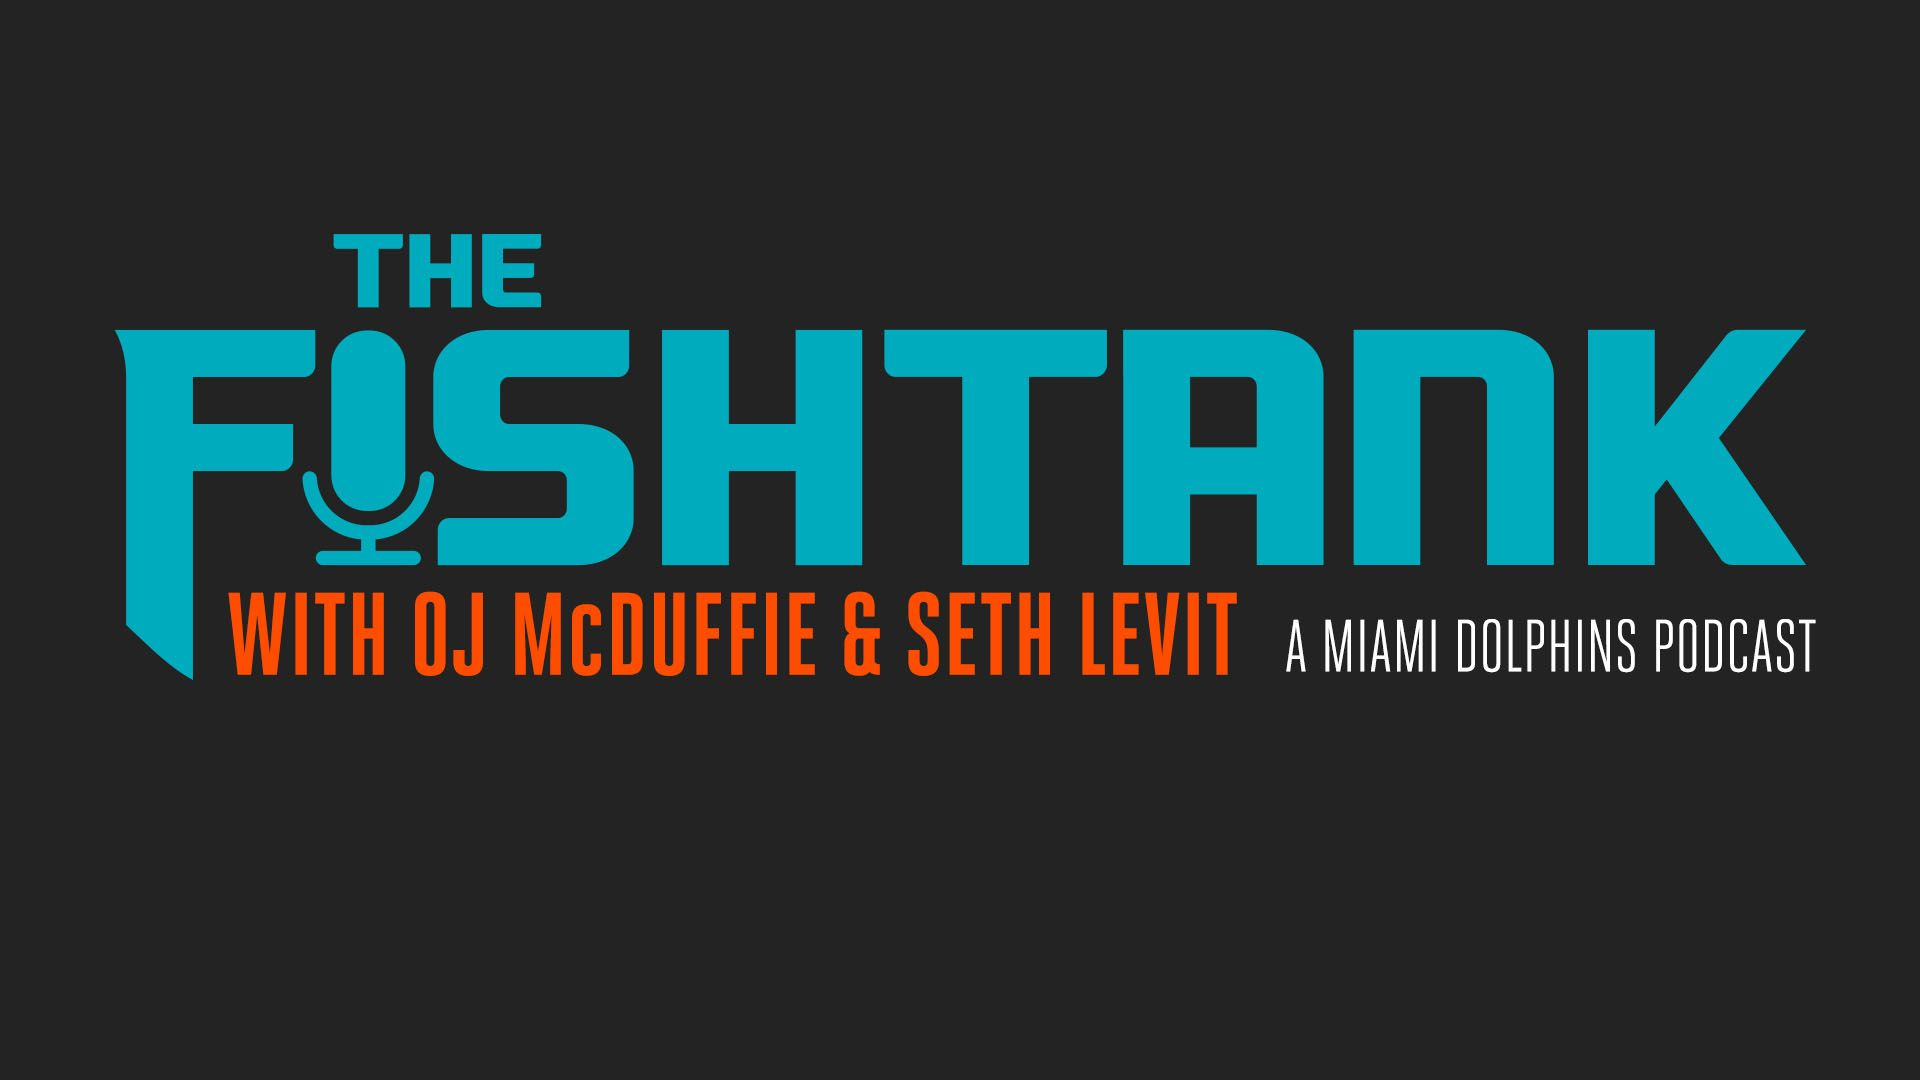 Graphic: The Fish Tank with OJ McDuffie & Seth Levit | A Miami Dolphins Podcast